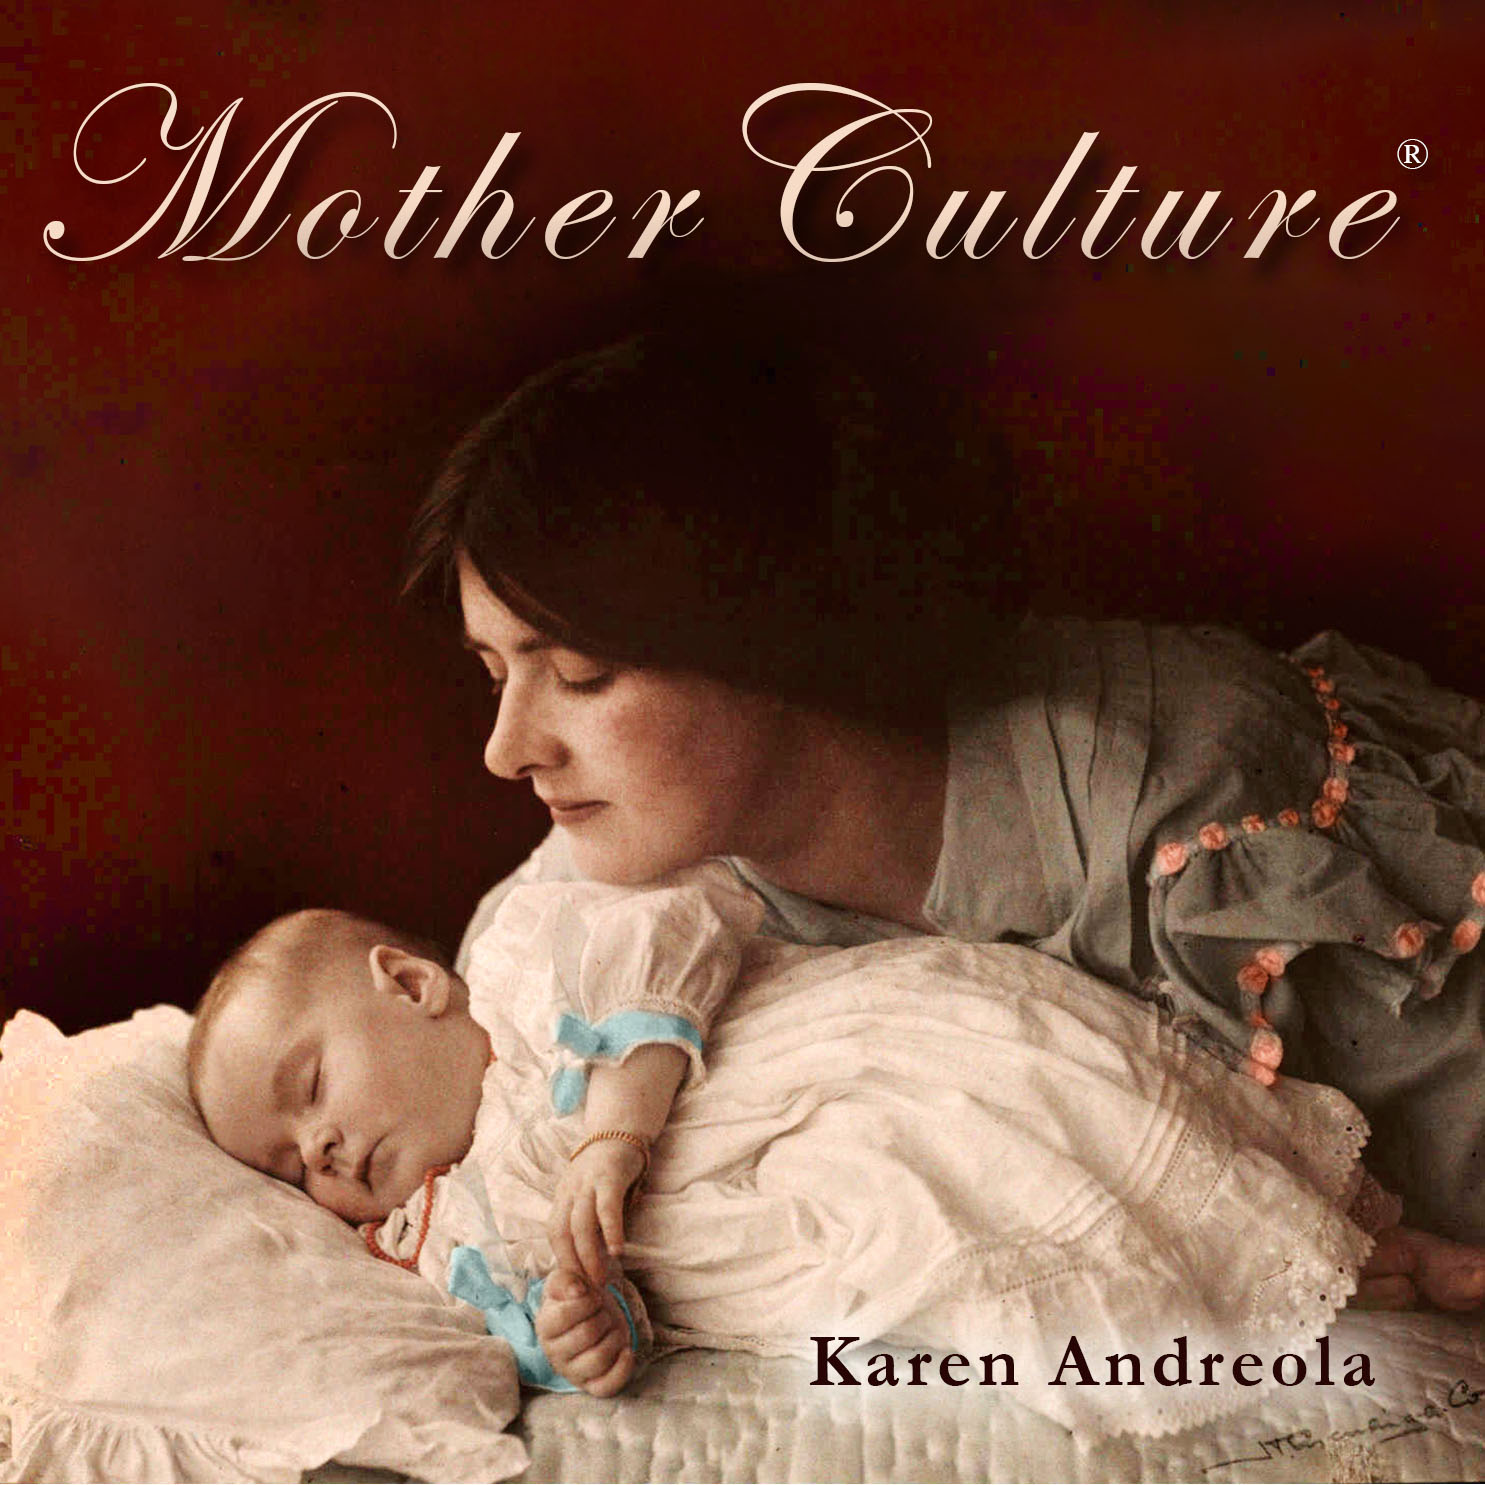 Mother Culture® is a registered trademark